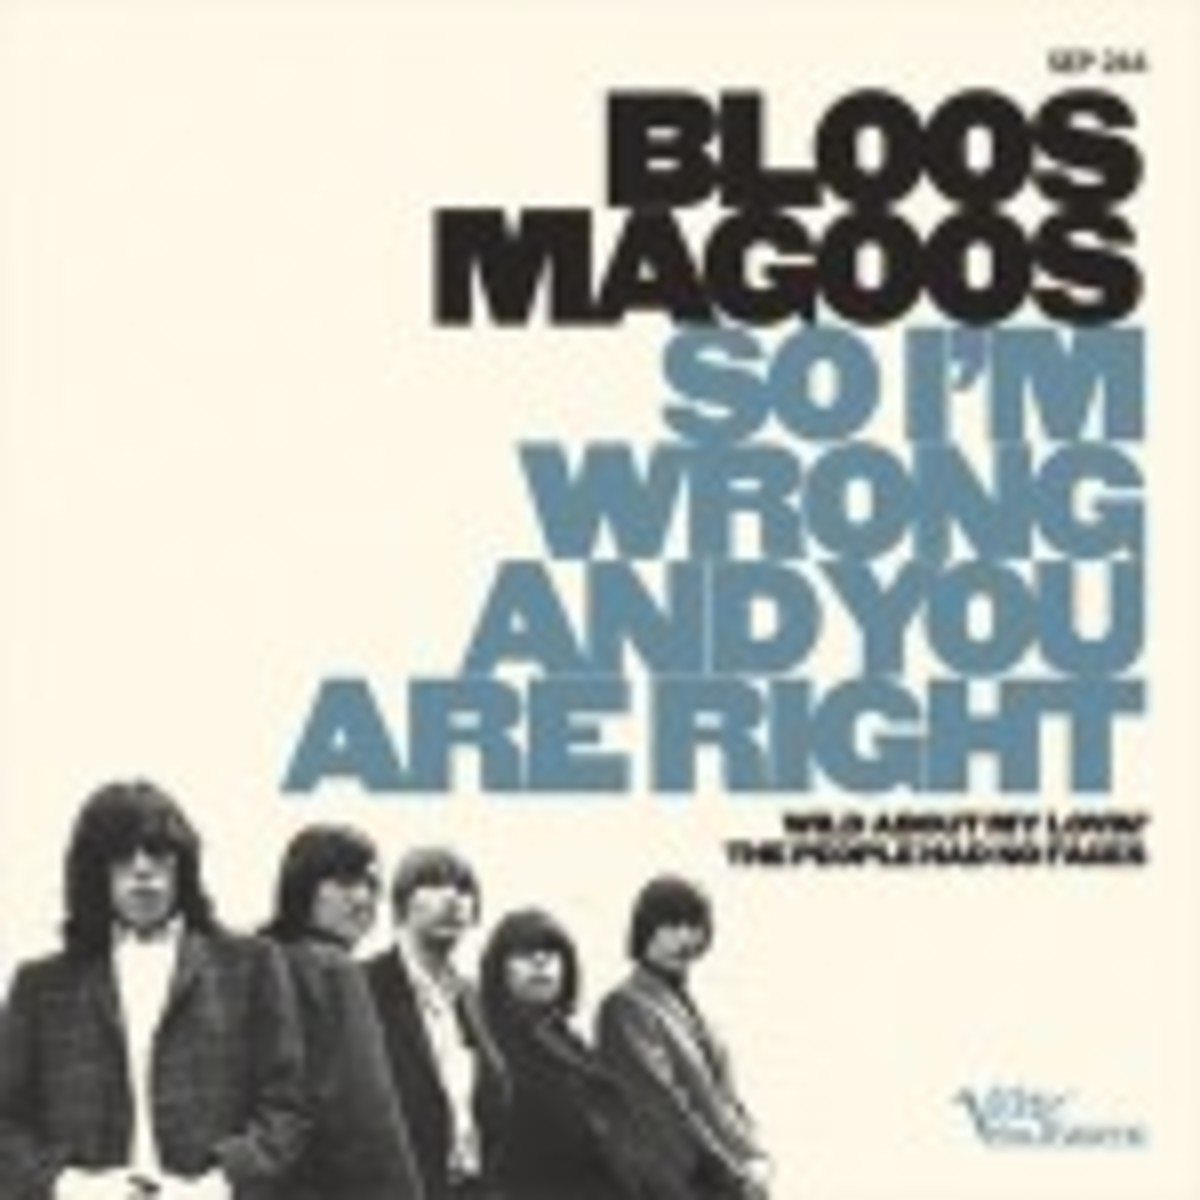 Blues Magoos Record Store Day single